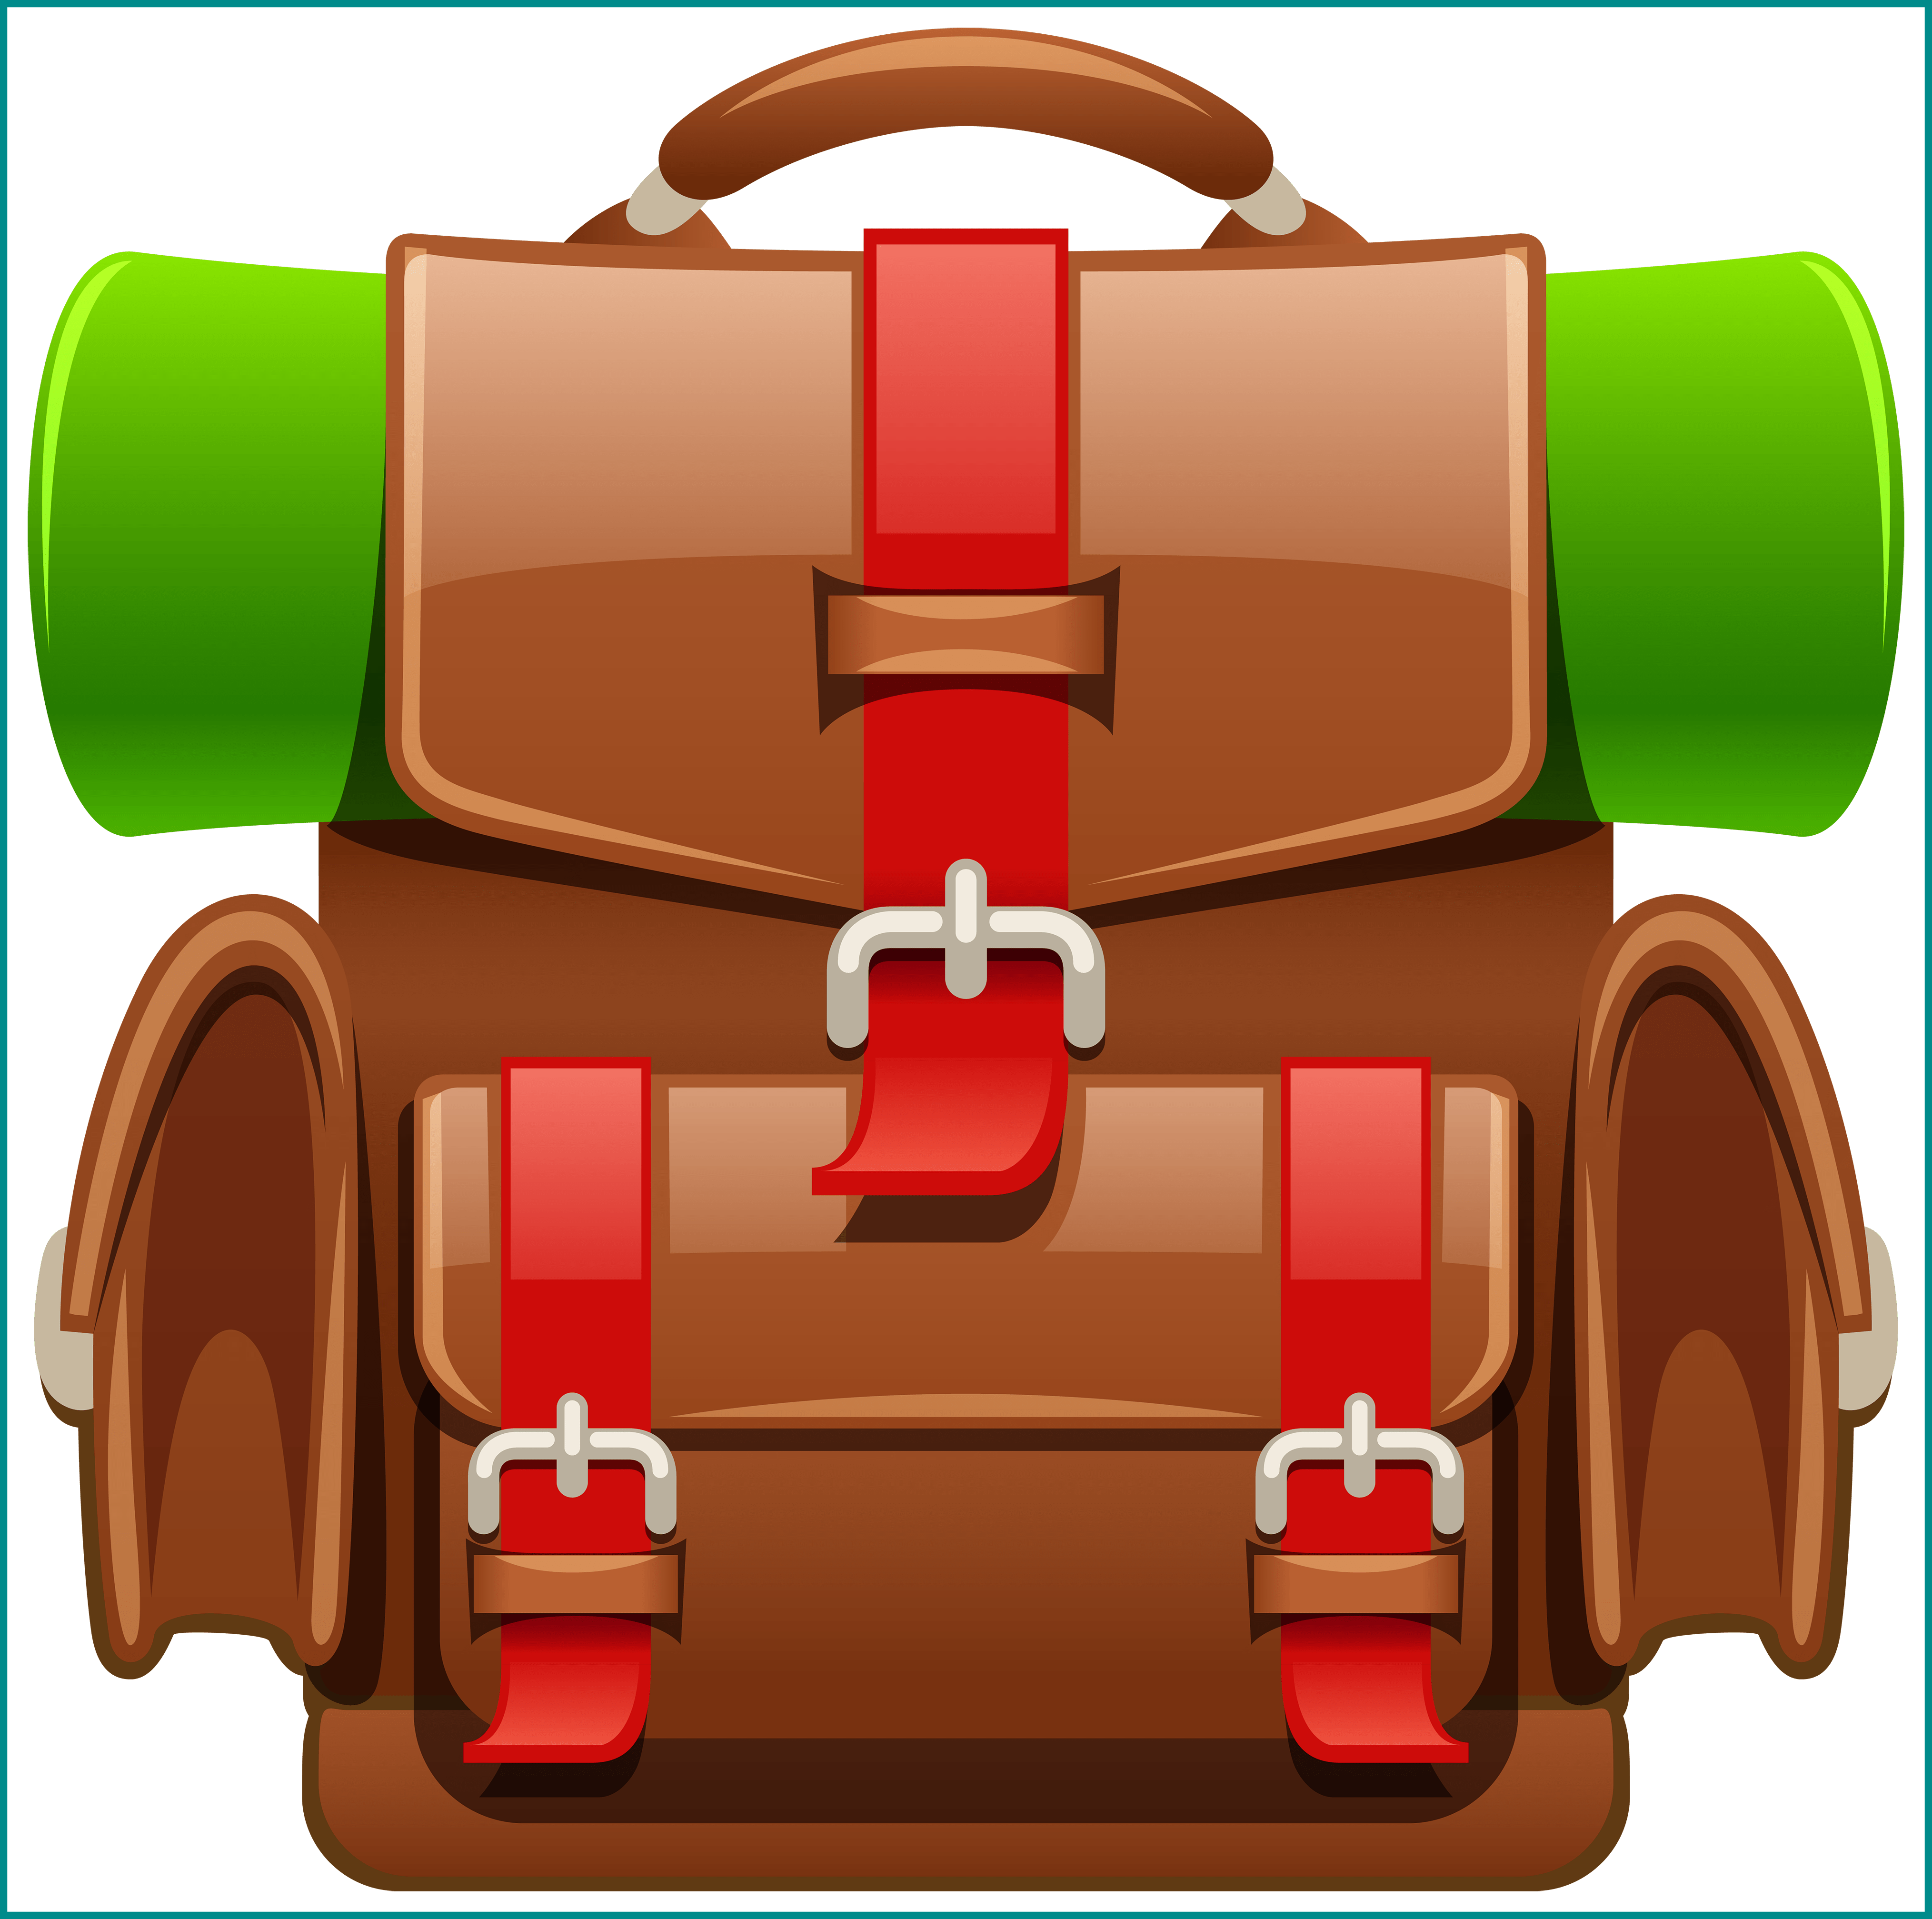 Book bag clipart free picture transparent library Bookbag clipart responsibility FREE for download on rpelm picture transparent library